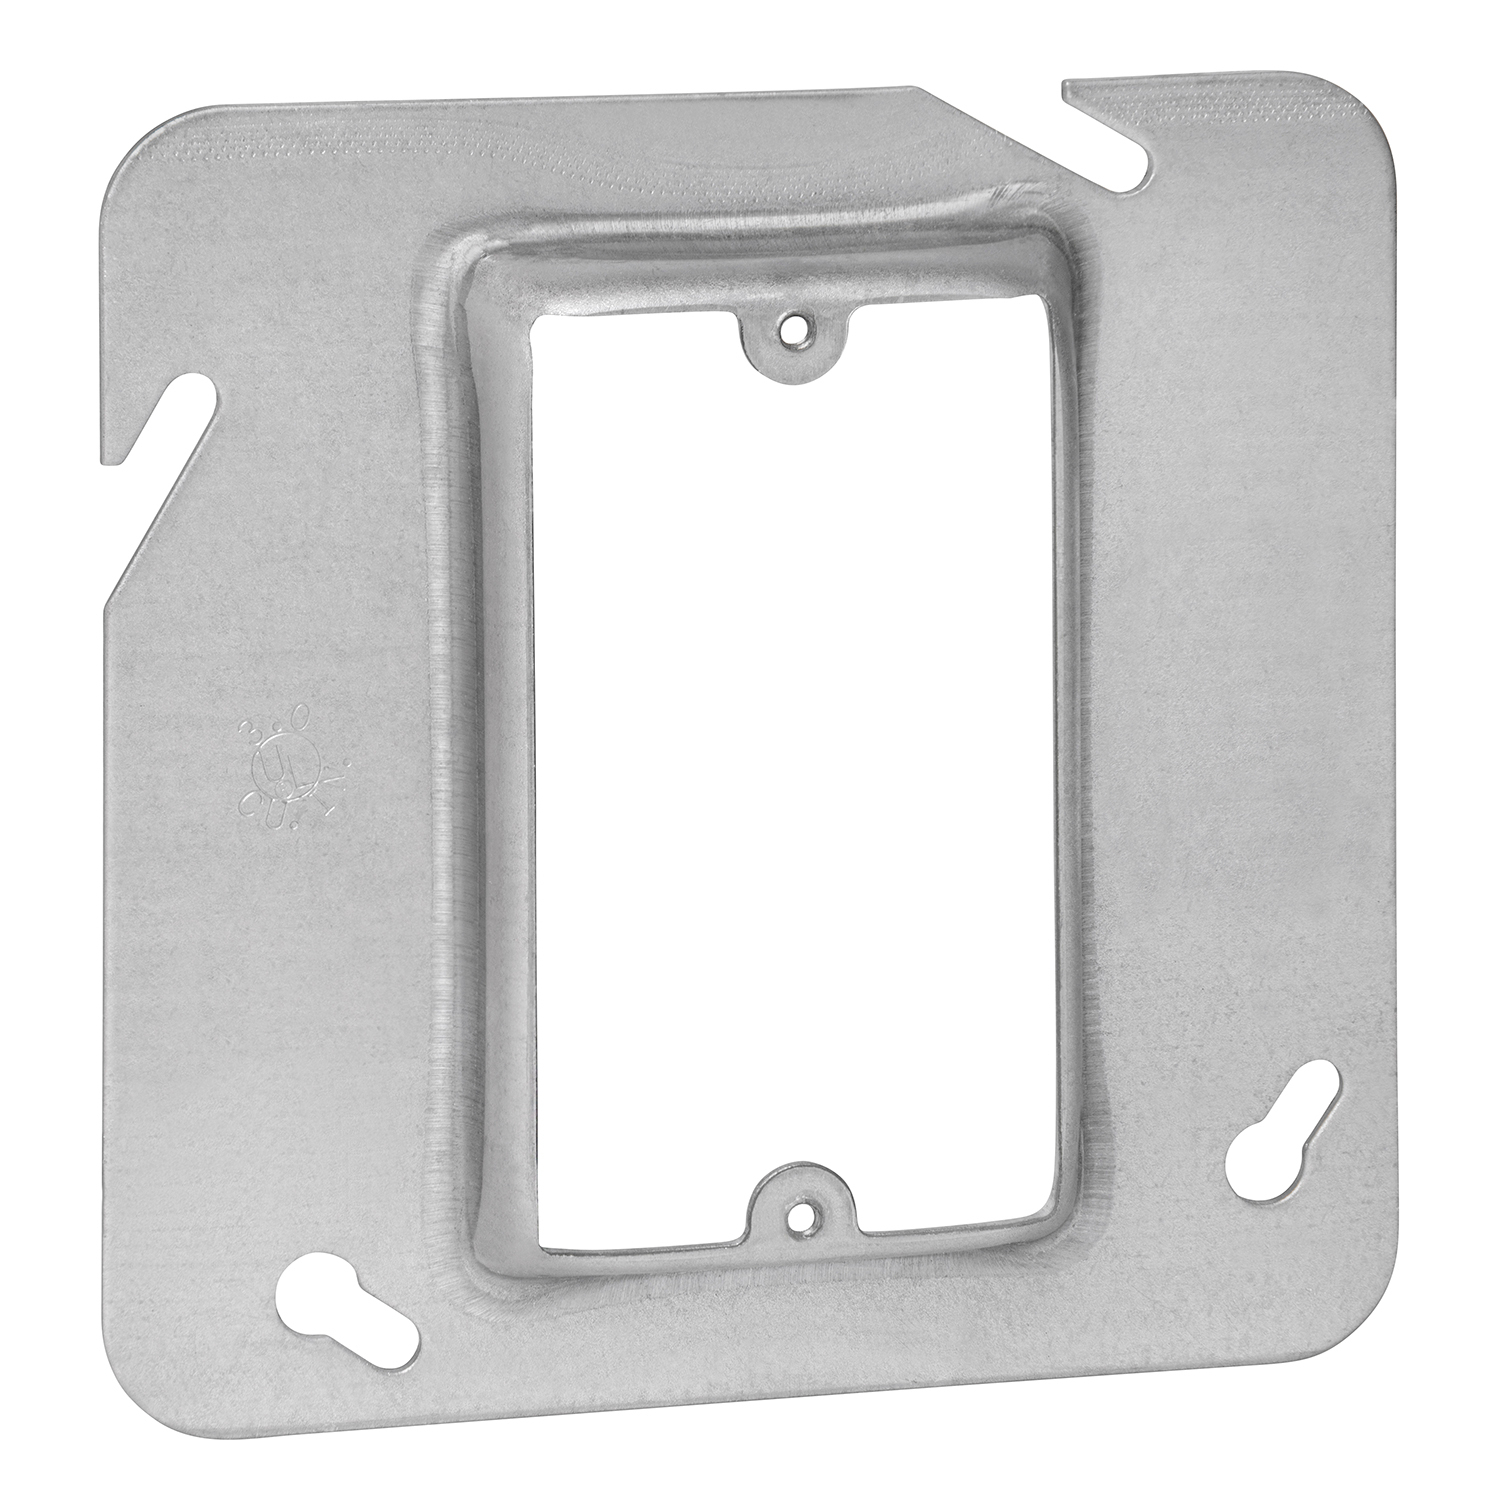 STEELCTY 72C13 4-11/16-IN SQUARE BOX COVER, STEEL, 3CU, RAISED